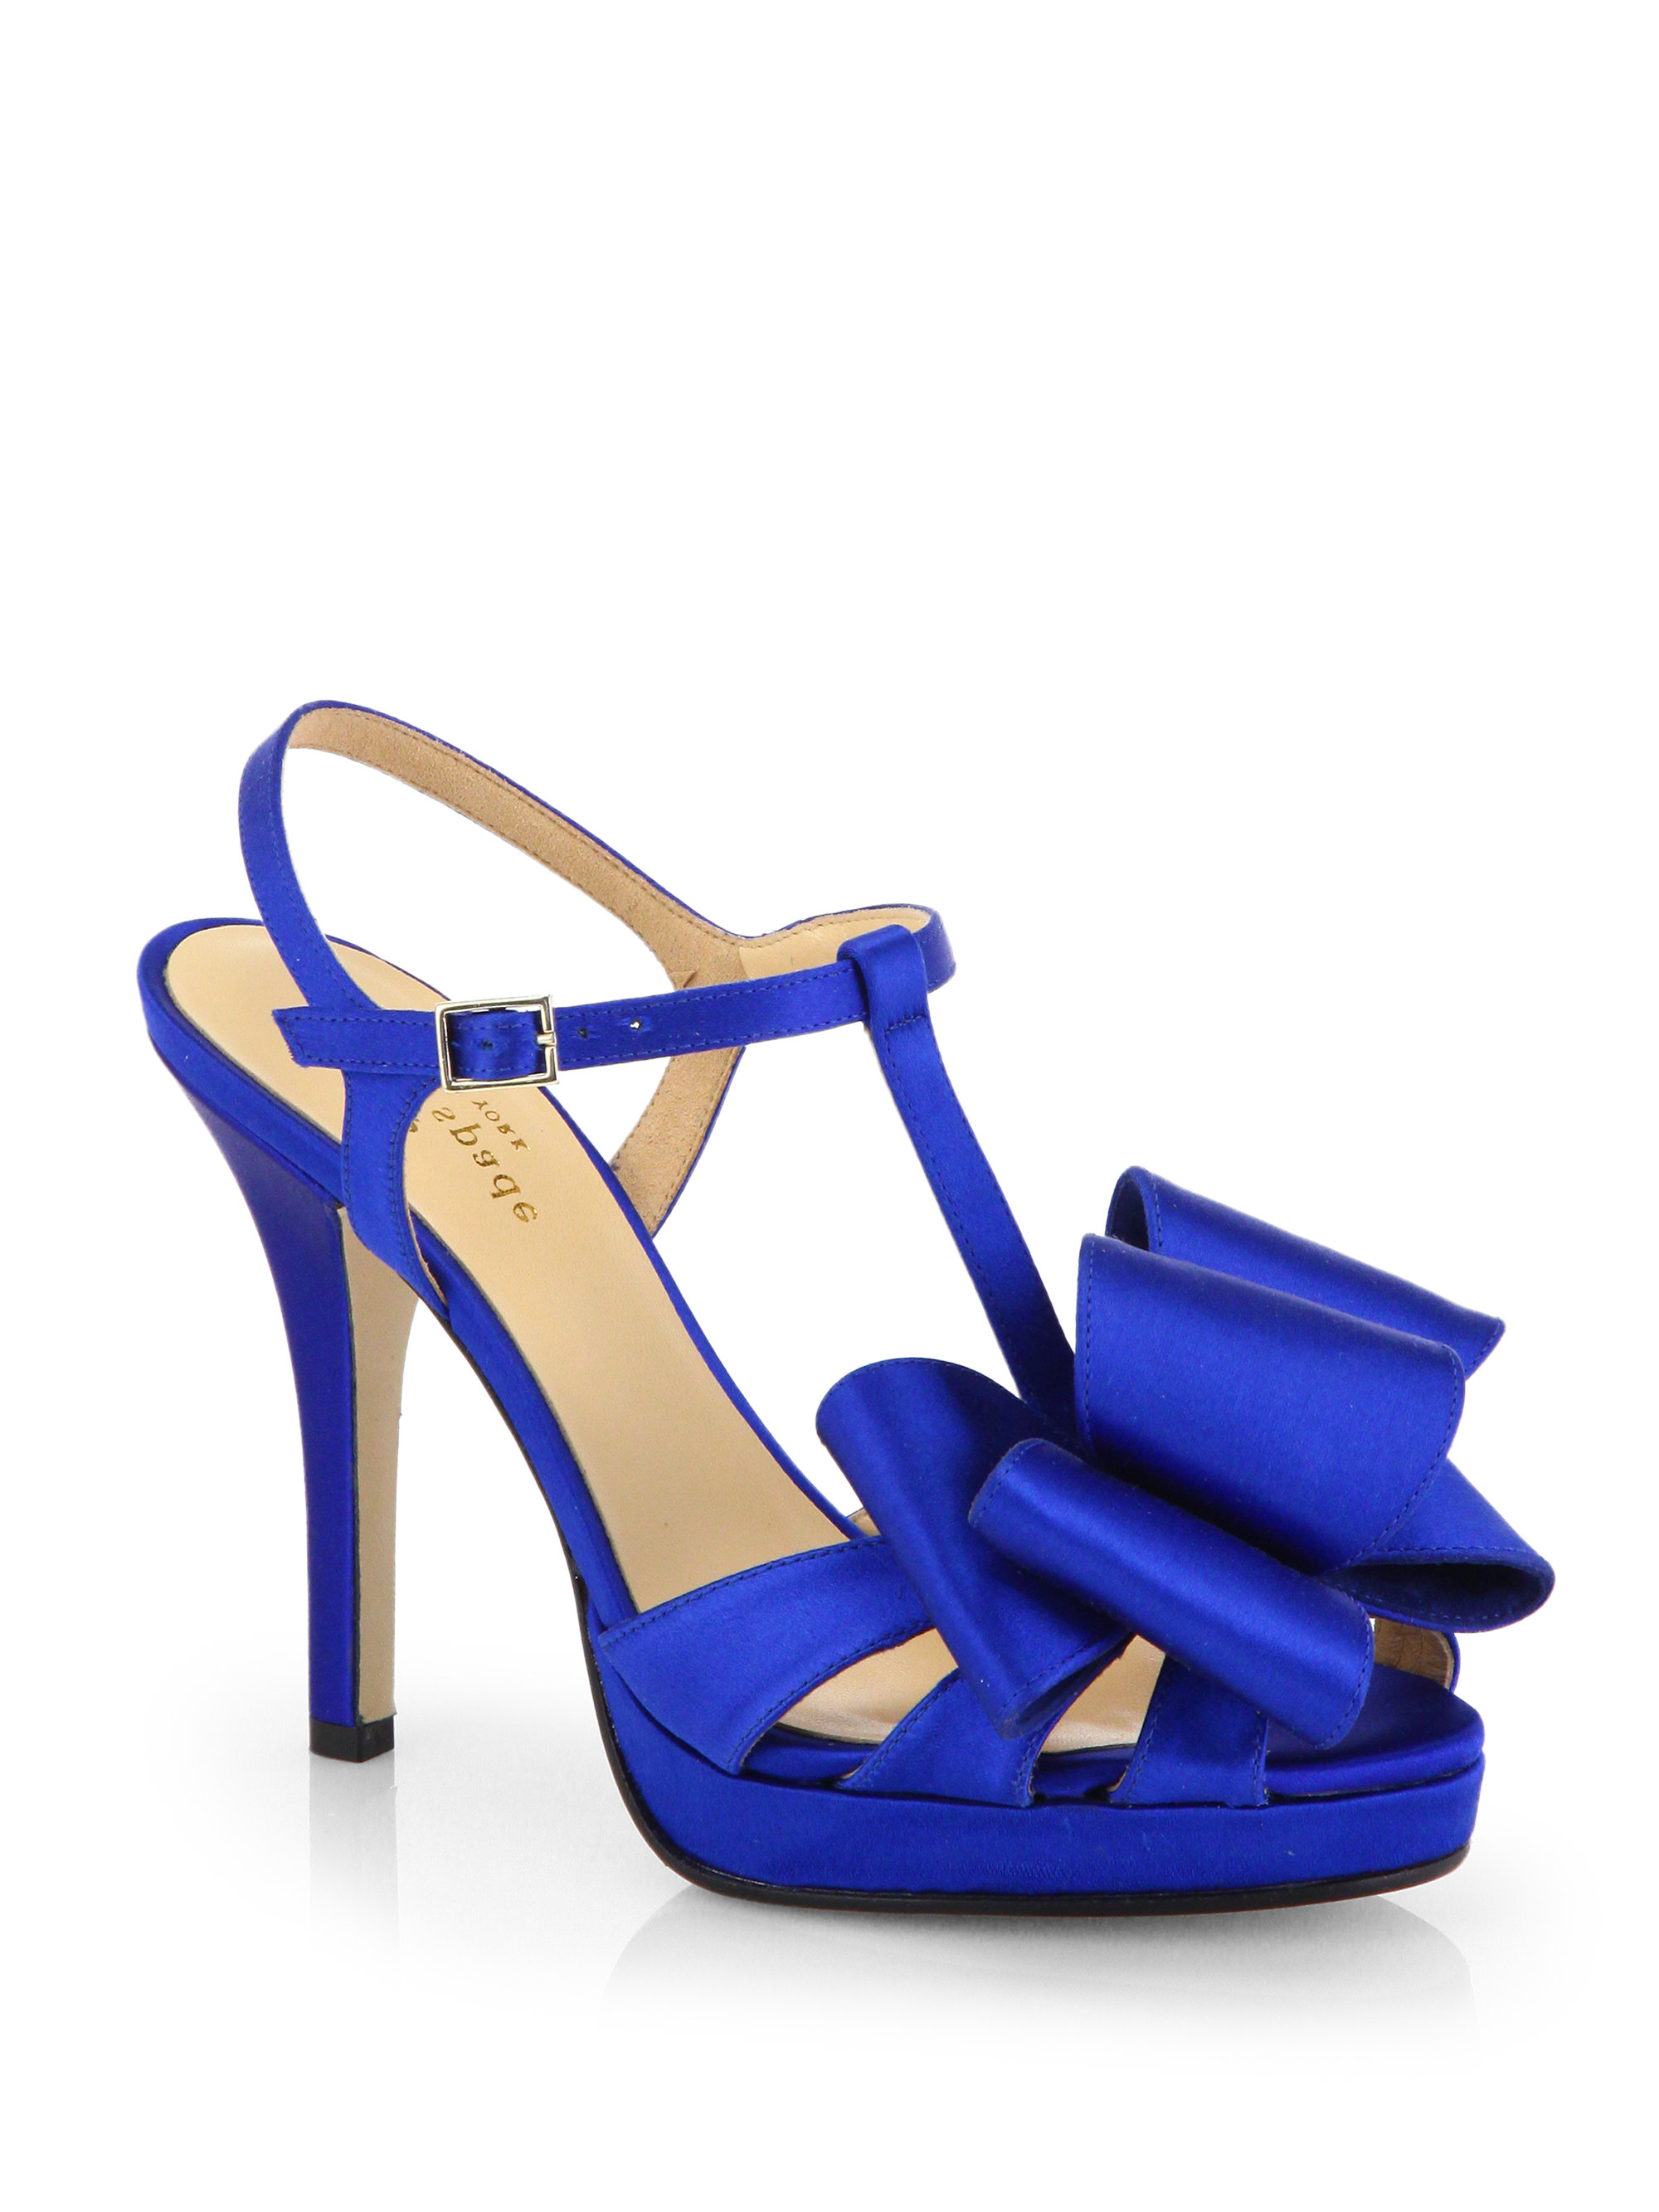 Kate spade new york Satin Ribbon Sandals in Blue